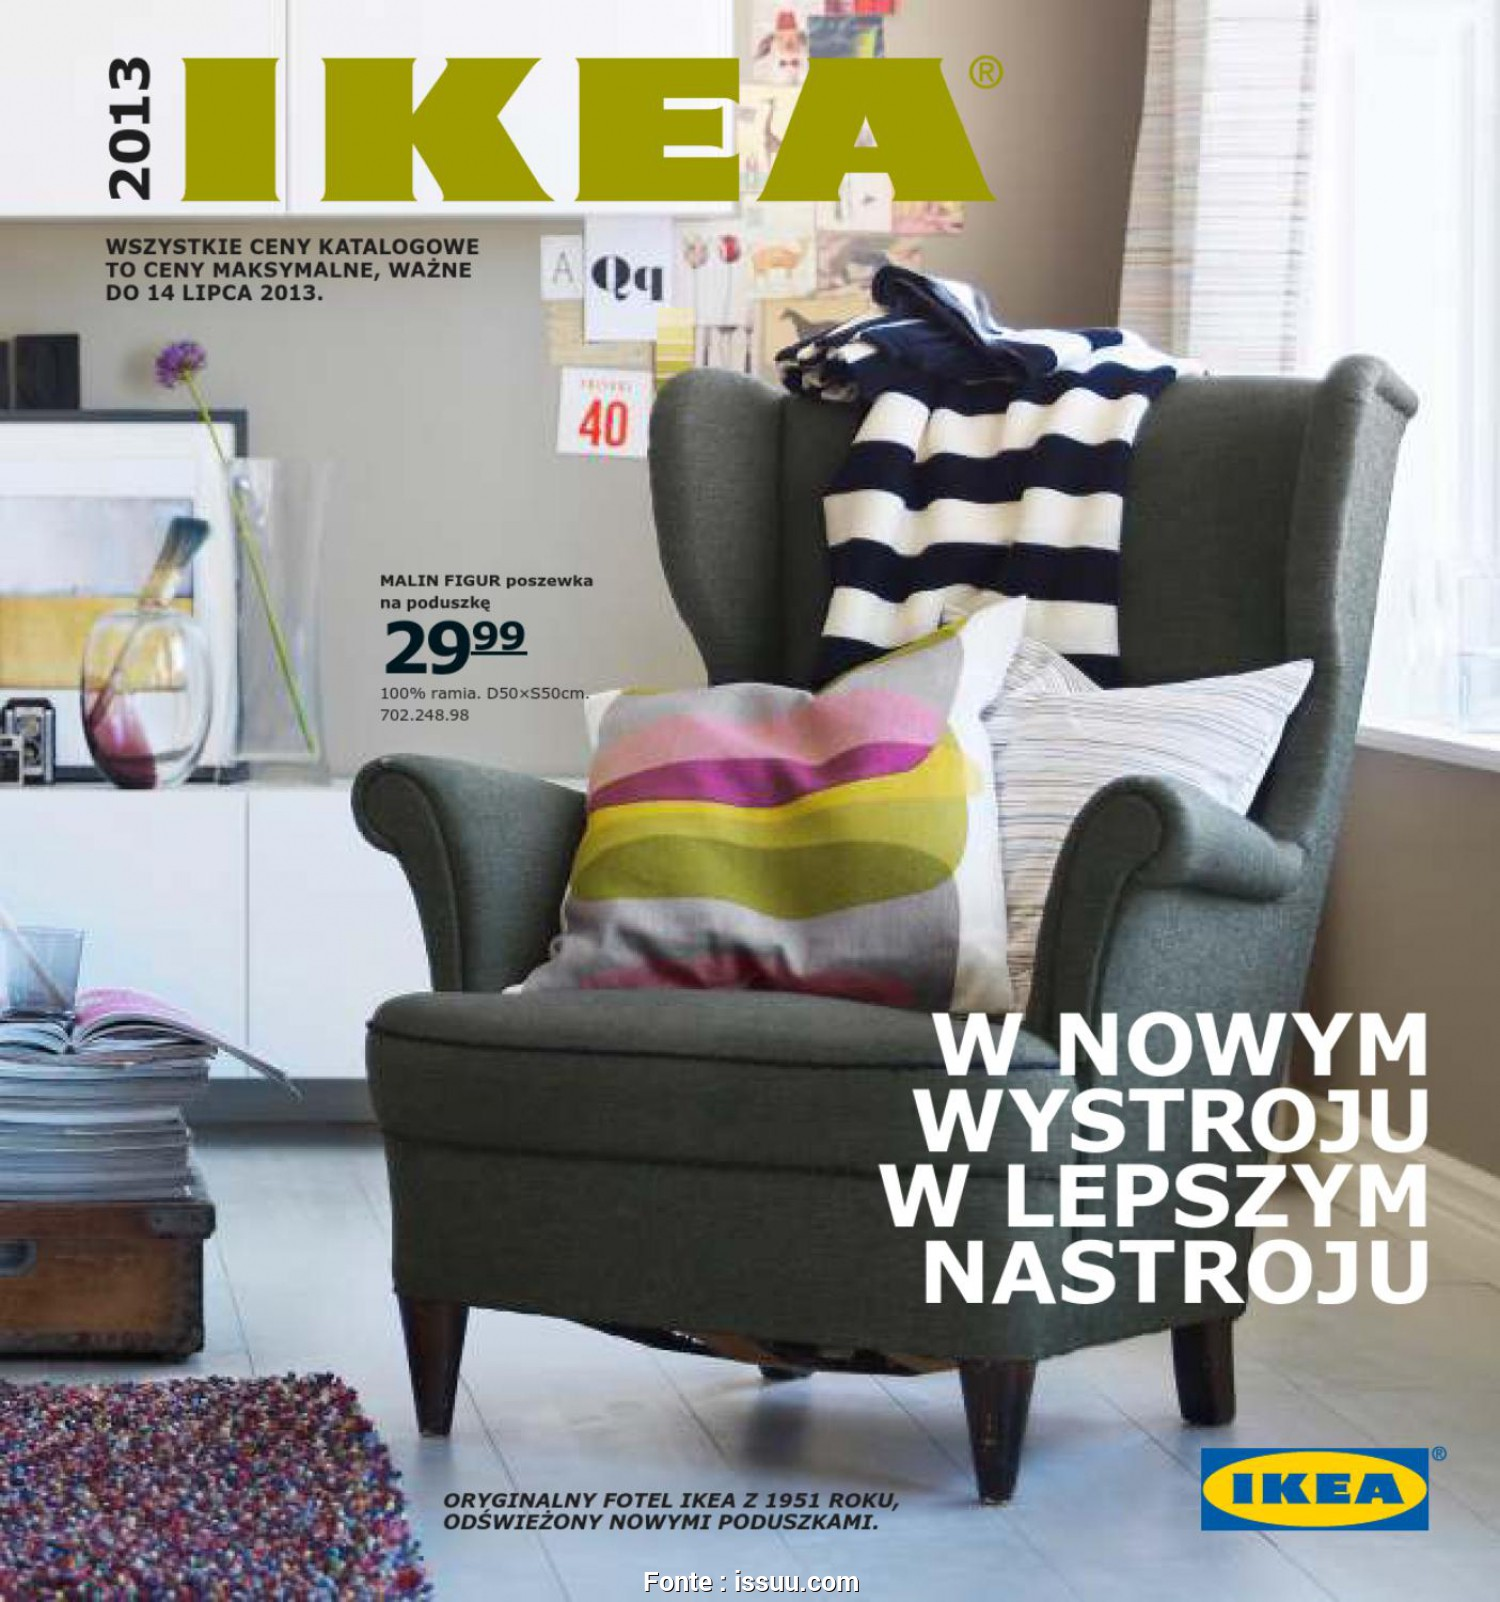 Ikea Beddinge Zawiasy Komplet 2, Mechanizm, Favoloso IKEA By Dzuzeppe Dzuzeppe, Issuu